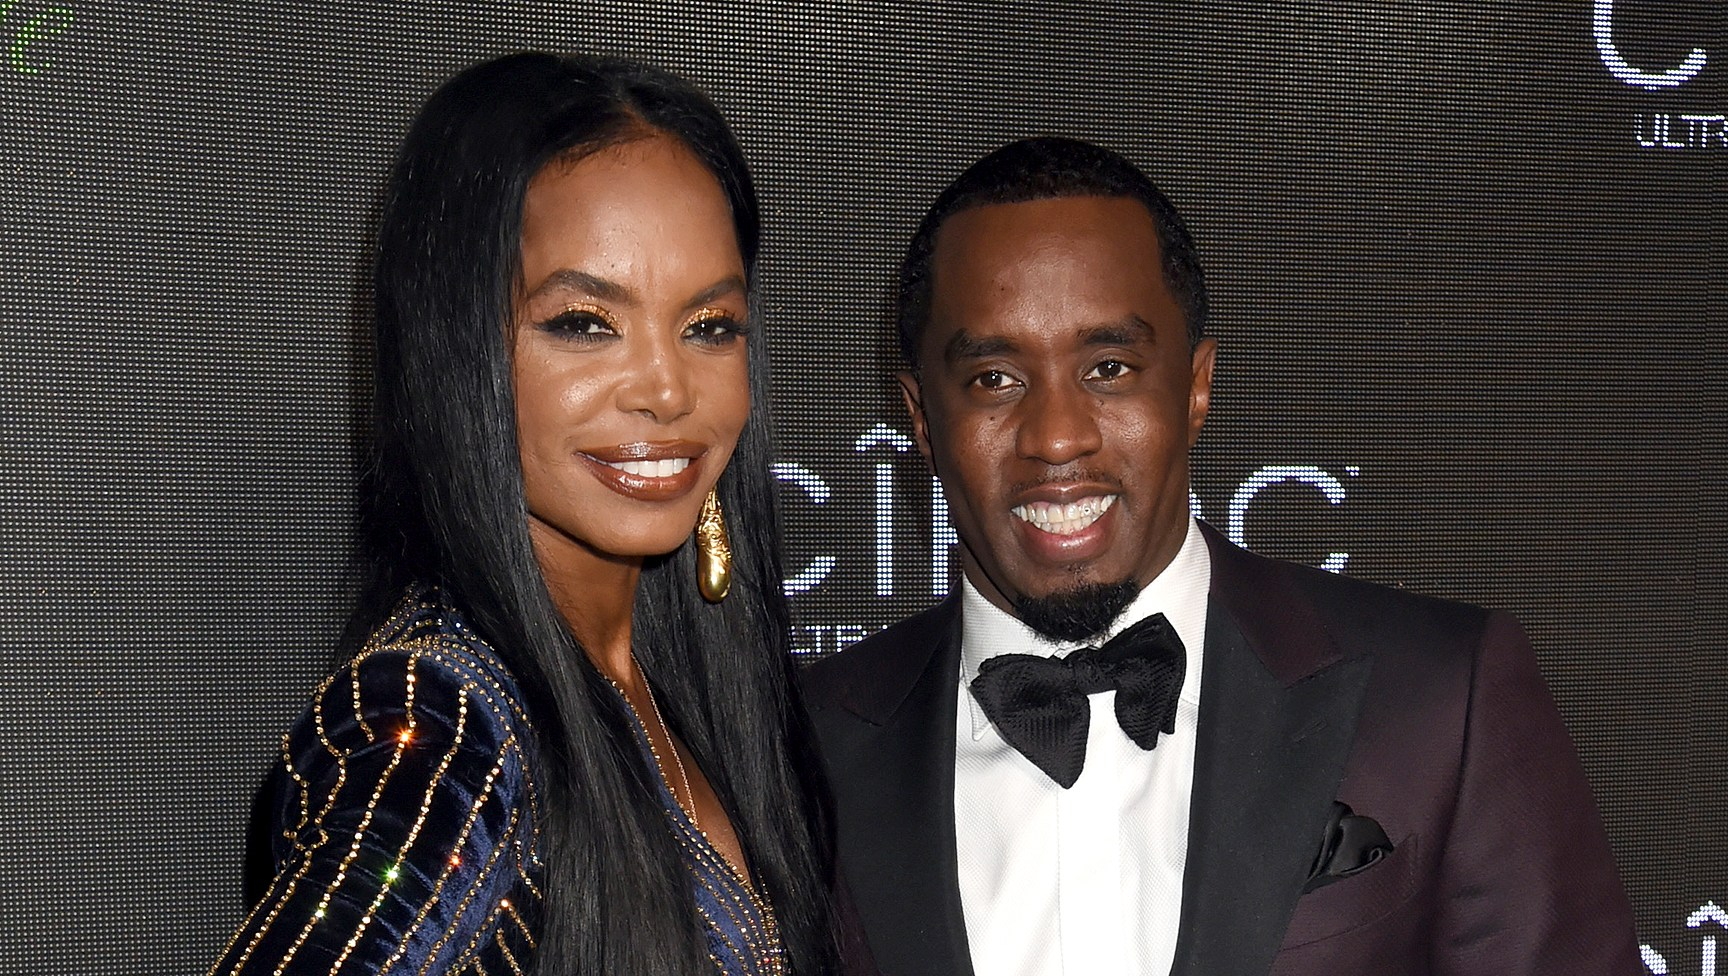 Sean 'Diddy' Combs Reveals His Ex Kim Porter's Last Words to Him Before Her Sudden Death